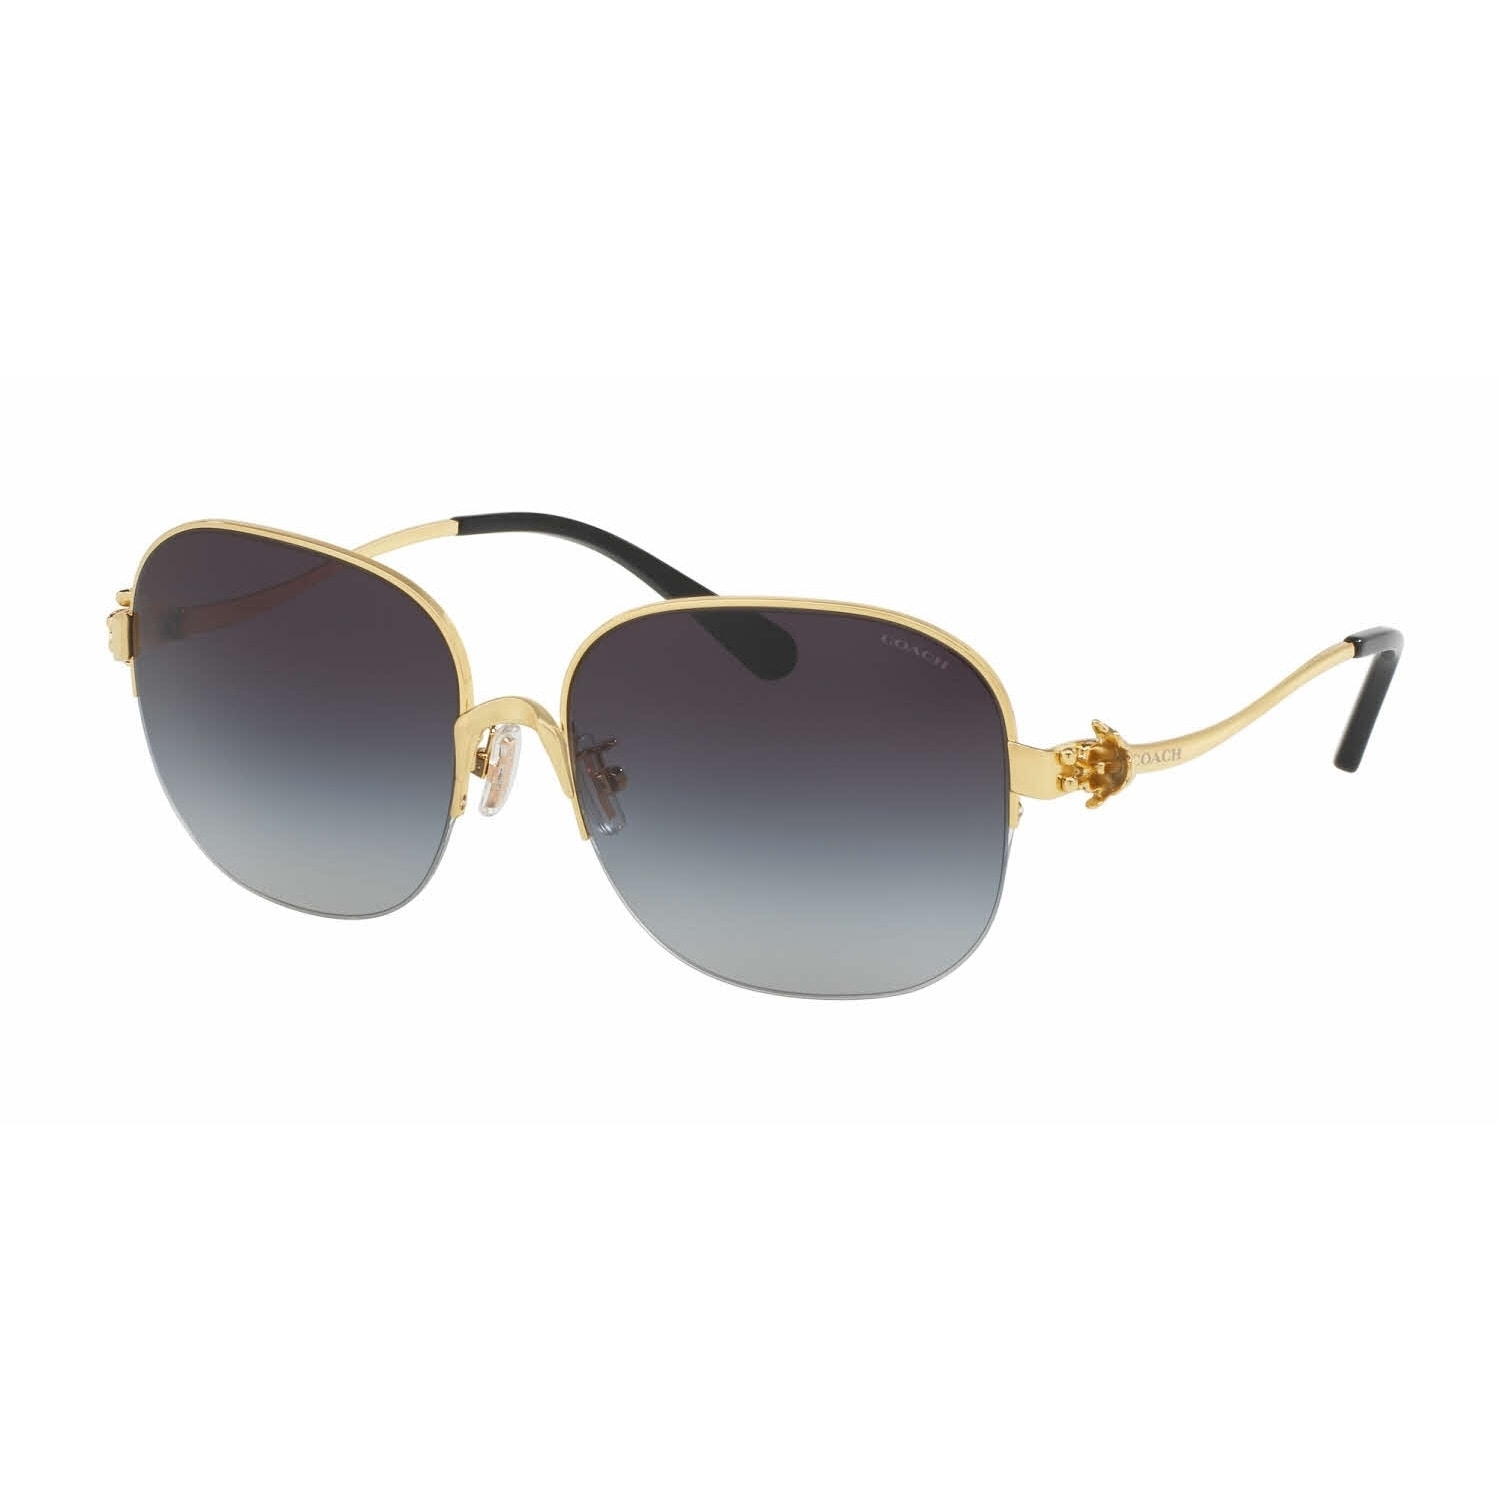 0c0c163300480 Shop Coach Women s HC7068 929111 58 Square Metal Plastic Gold Grey  Sunglasses - Free Shipping Today - Overstock - 14692941